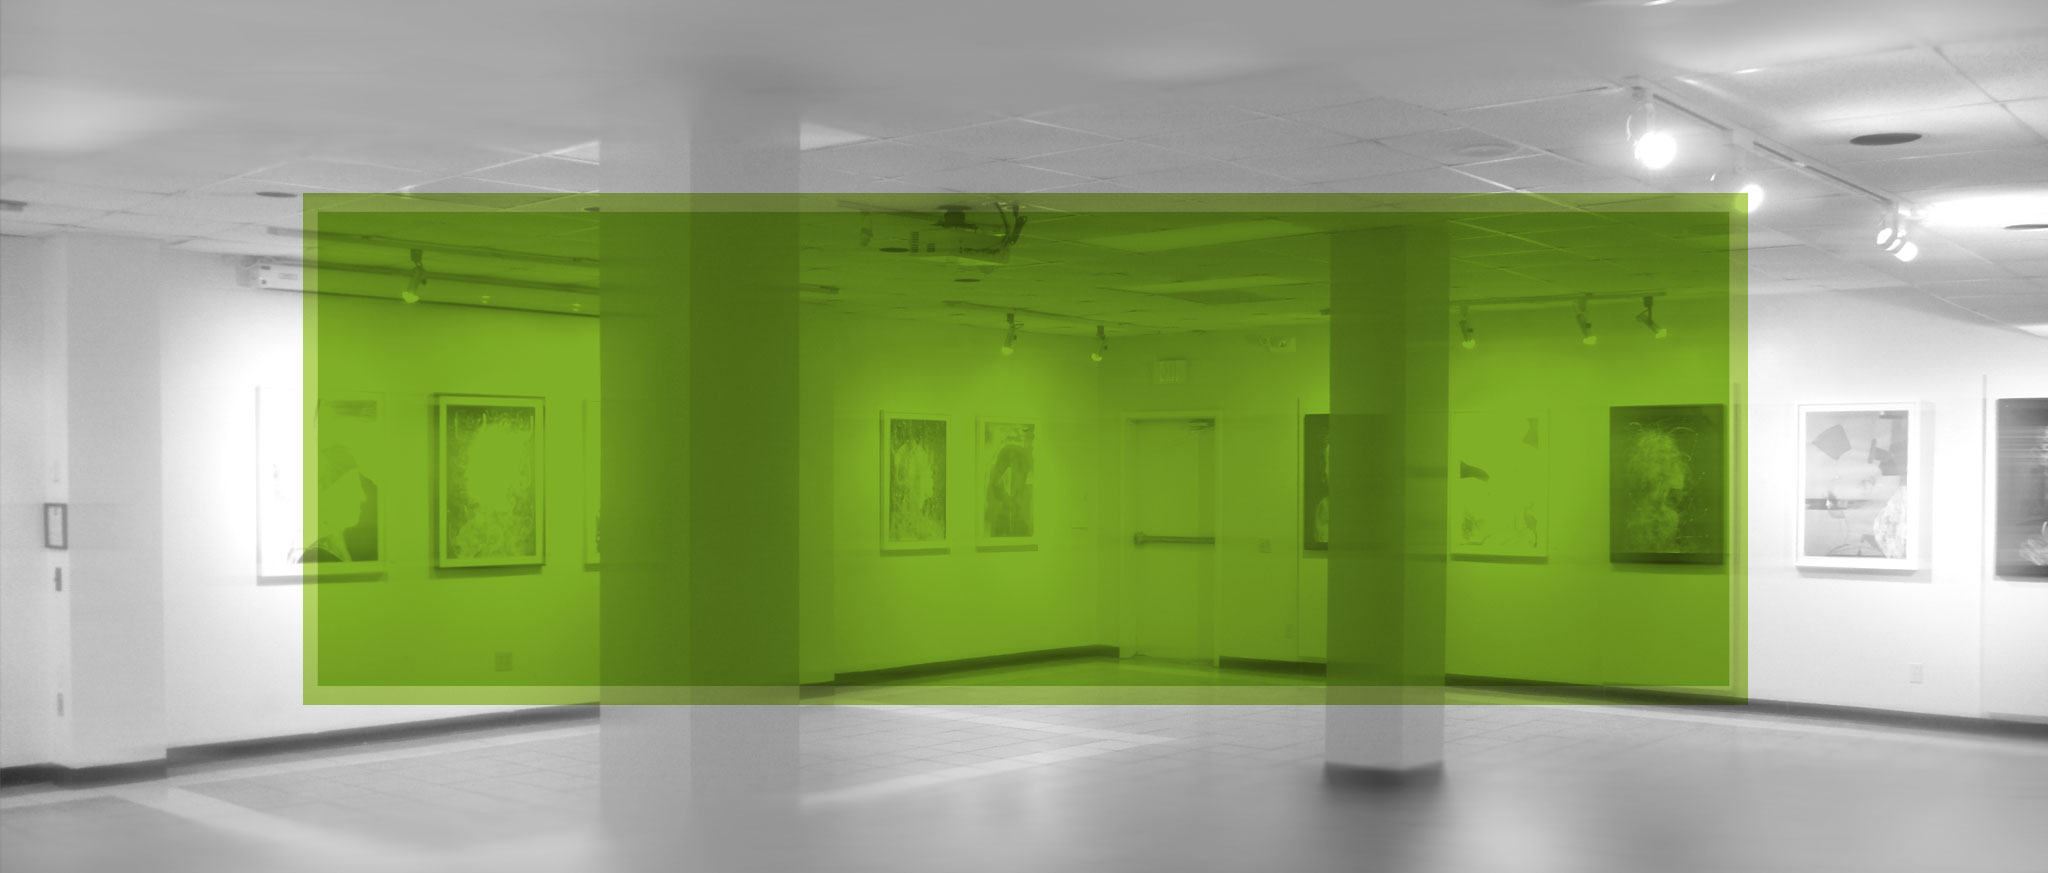 Proposal for Art Exhibitions 2020 - 2021 IHCH